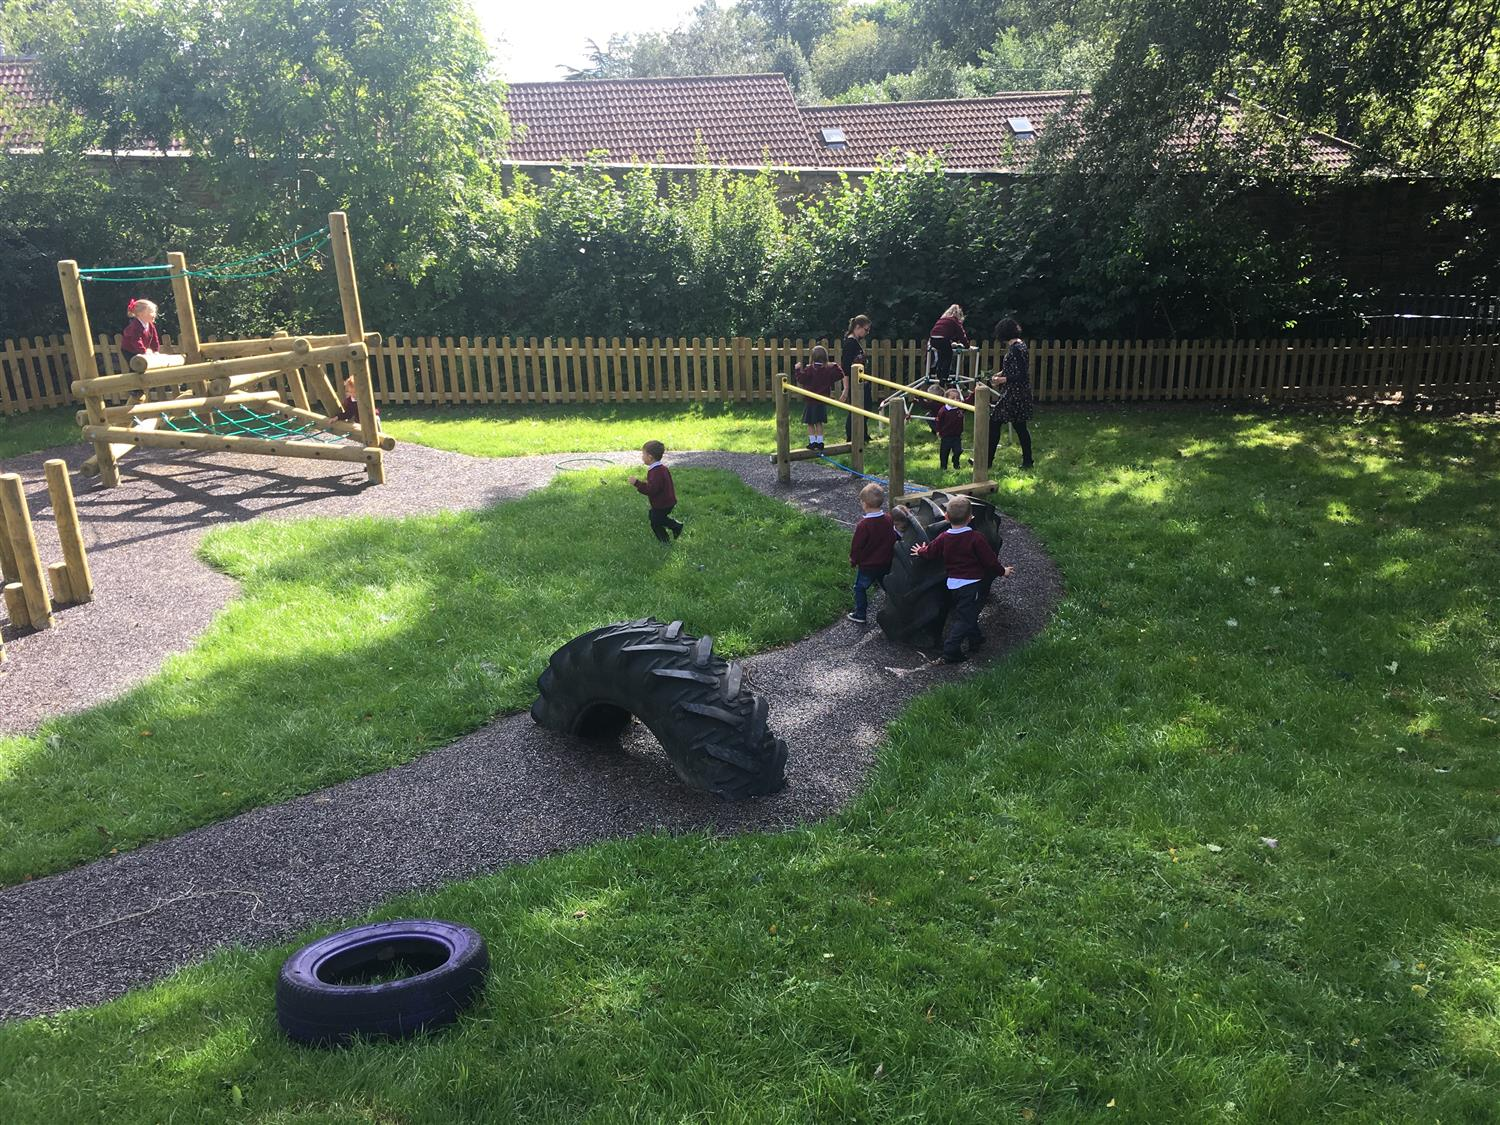 Mary swanwick 39 s playground and water flow area pentagon play for Large garden equipment